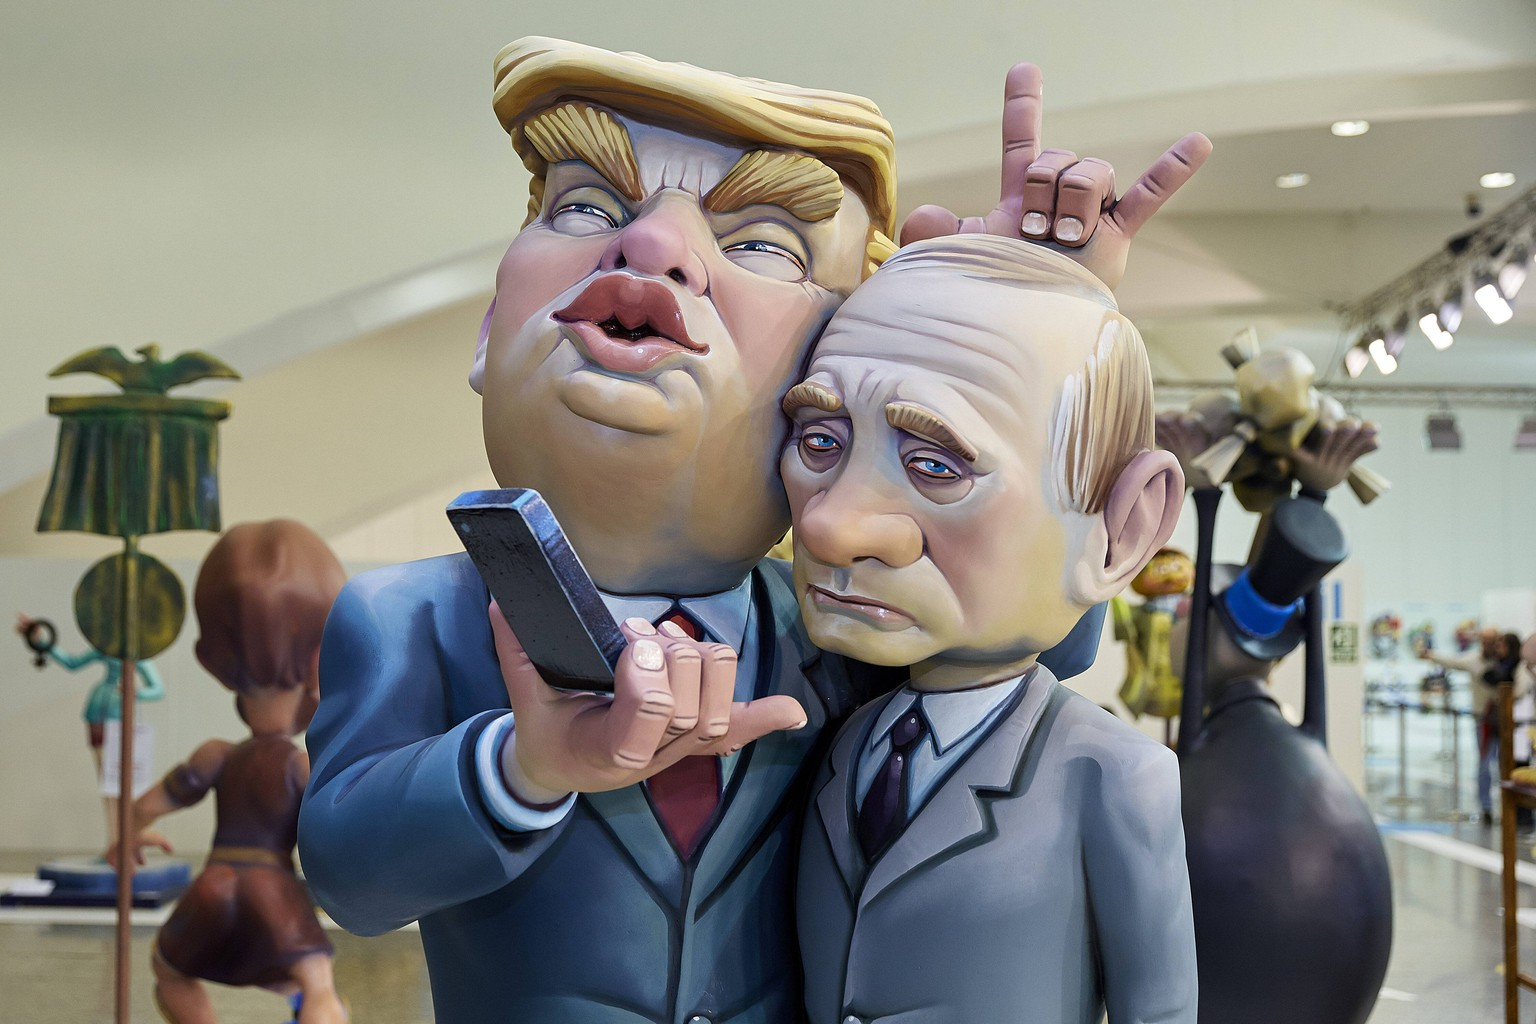 March 1, 2018 - Valencia, Valencia, Spain - A ninot (puppet) depicting United States President Donald Trump (L) and Russian Federation President Vladimir Putin t is displayed during the Ninot exhibition ahead of Las Fallas Festival at Museo de Las Ciencias Principe Felipe on March 1, 2018 in Valencia, Spain. The Fallas is Valencias most international festival, which runs from March 15 until March 19 and celebrates the arrival of spring with fireworks, fiestas and bonfires made by large puppets named Ninots. During the months preceding this unique festivity, a lot of hard work and dedication is put into preparing the monumental and ephemeral cardboard statues that will be devoured by the flames. The festival has been designated as a UNESCO Intangible Cultural Heritage of Humanity since 2016. Valencia Spain PUBLICATIONxINxGERxSUIxAUTxONLY - ZUMAn230 20180301_zaa_n230_327 Copyright: xDavidxAliagax